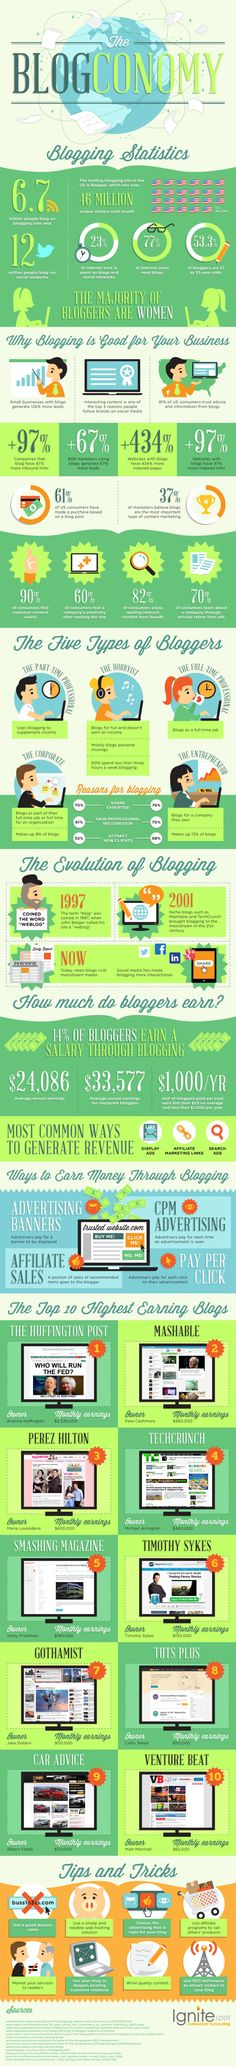 #Blogging tips and facts. #marketing #infographic Gaynor Parke www.socialmediamamma.com